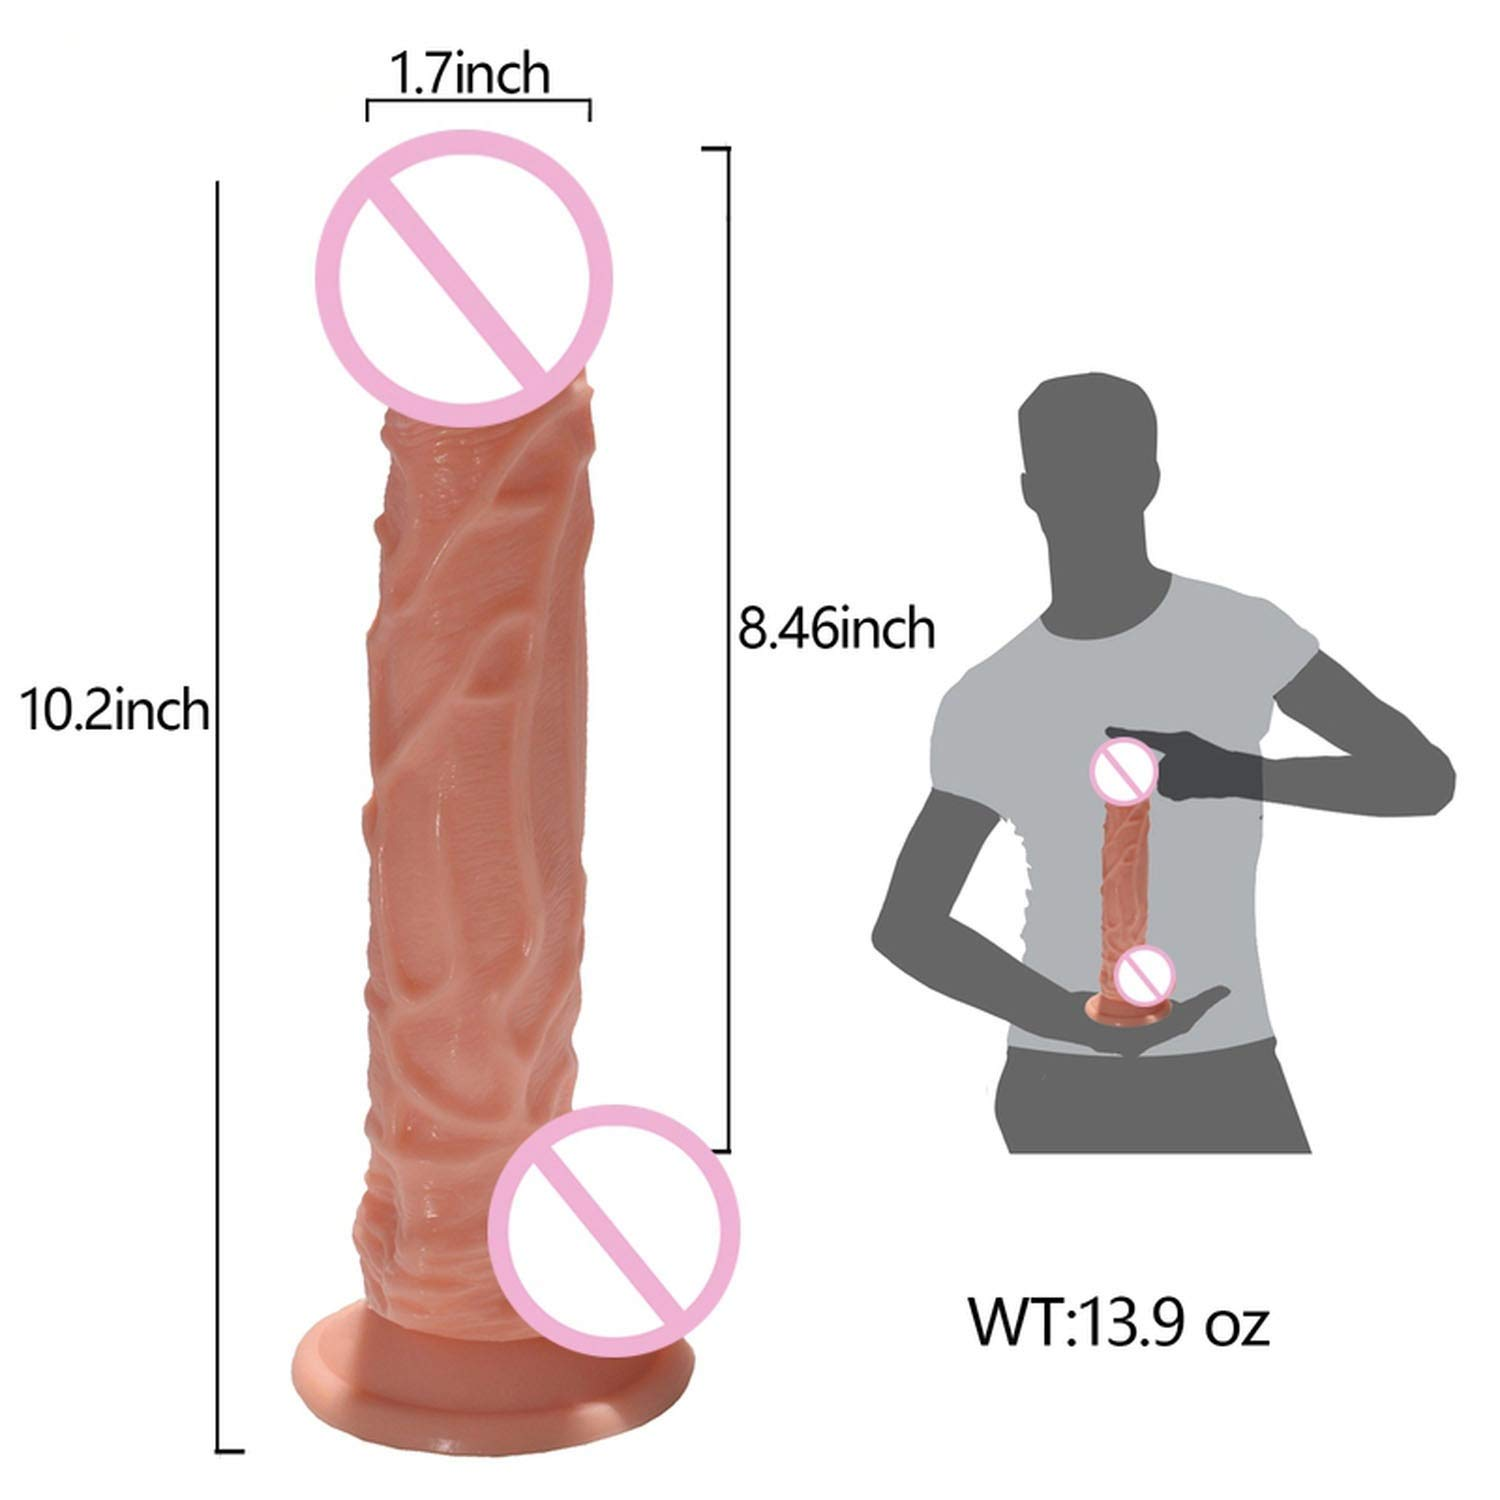 USEXMTY S-Tshirt 10 inches Huge Real P-énis Big Soft D-ick Suction Cup Dong Privacy Funny Toys for Women Privacy Product,Beige Effectively by USEXMTY S-Tshirt (Image #3)